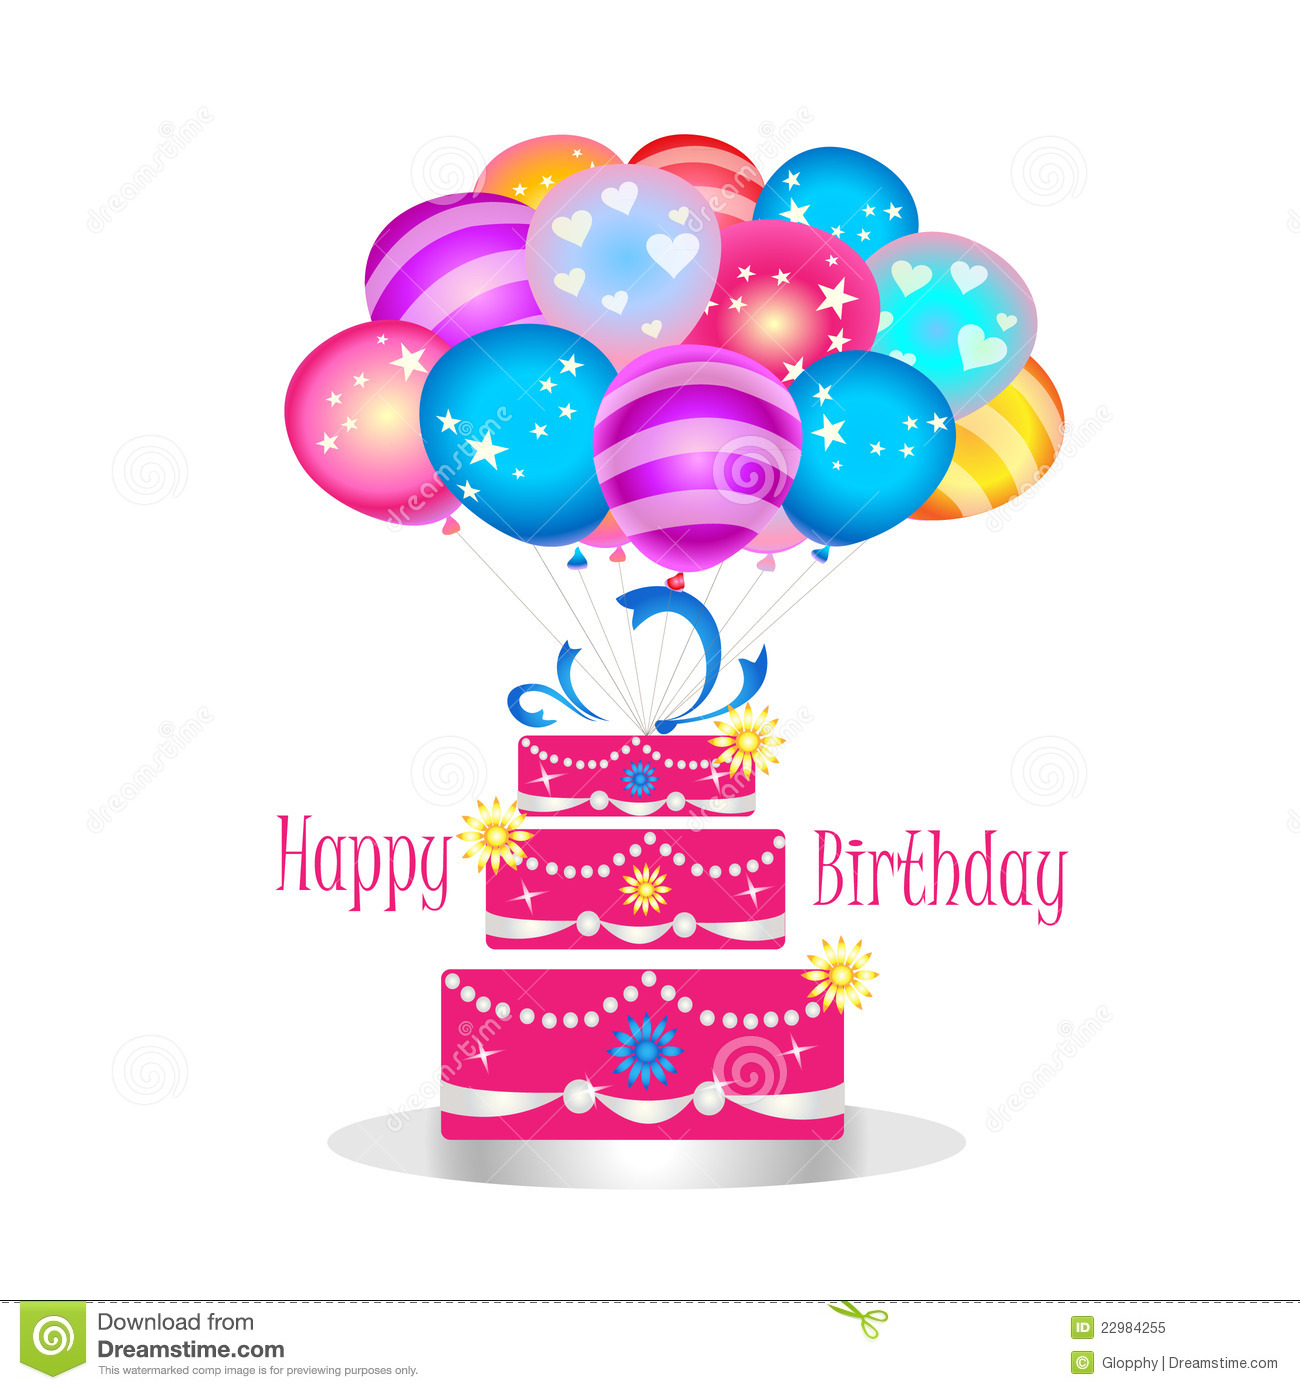 Girly birthday cake clipart image transparent Girly Happy Birthday Clipart - Clipart Kid image transparent